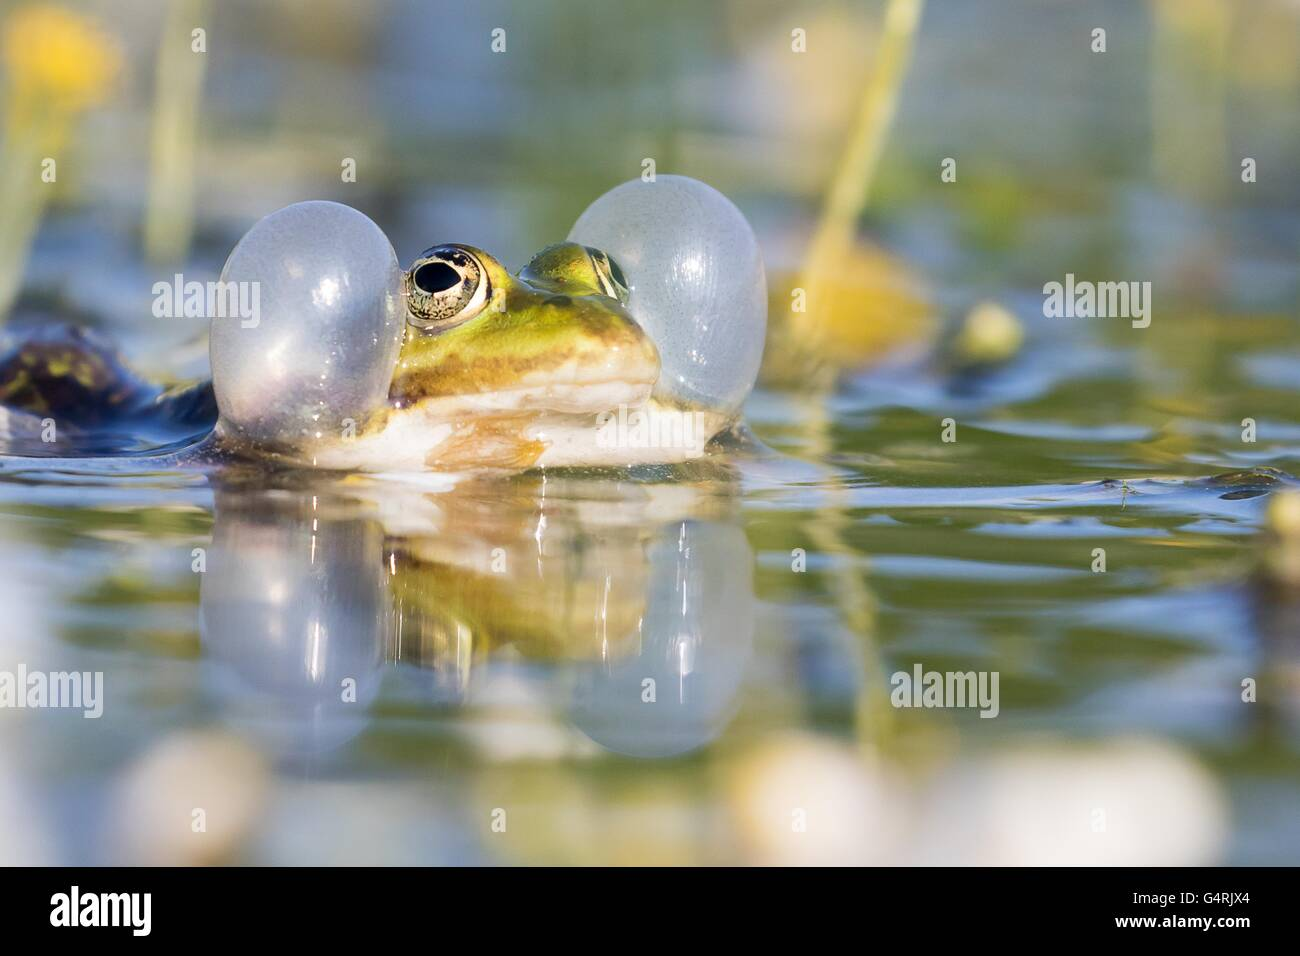 Edible frog (Pelophylax esculentus) in water, vocal sac, Hesse, Germany - Stock Image